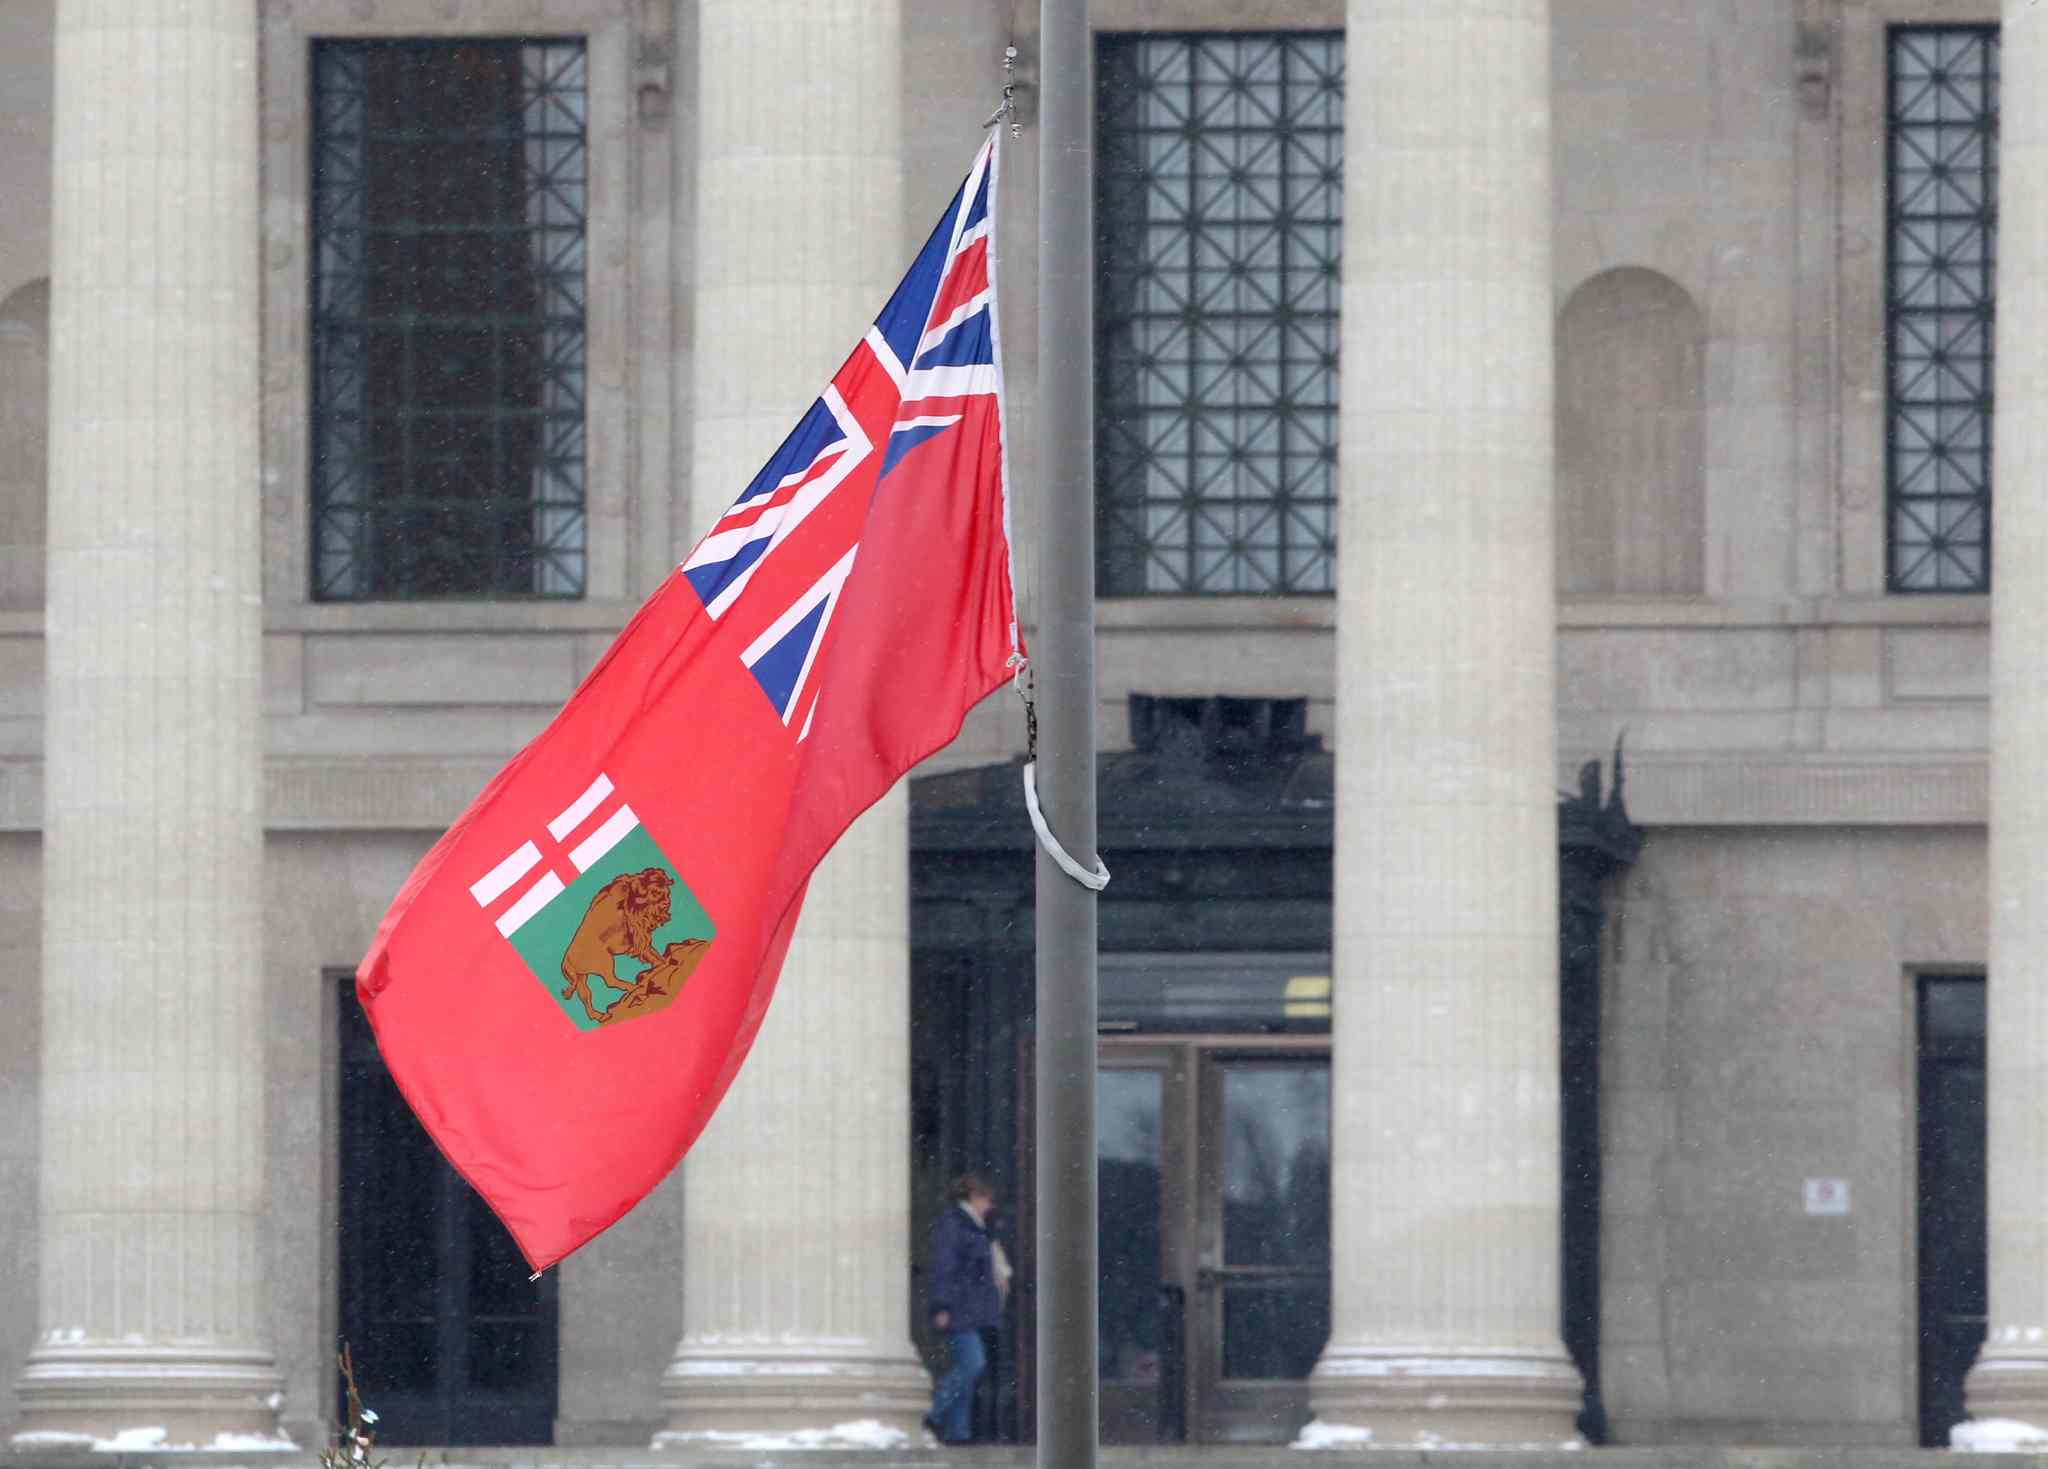 Flags are at half-mast at the Manitoba Legislature Thursday to honour former Premier Howard Pawley who died at the age of 81.